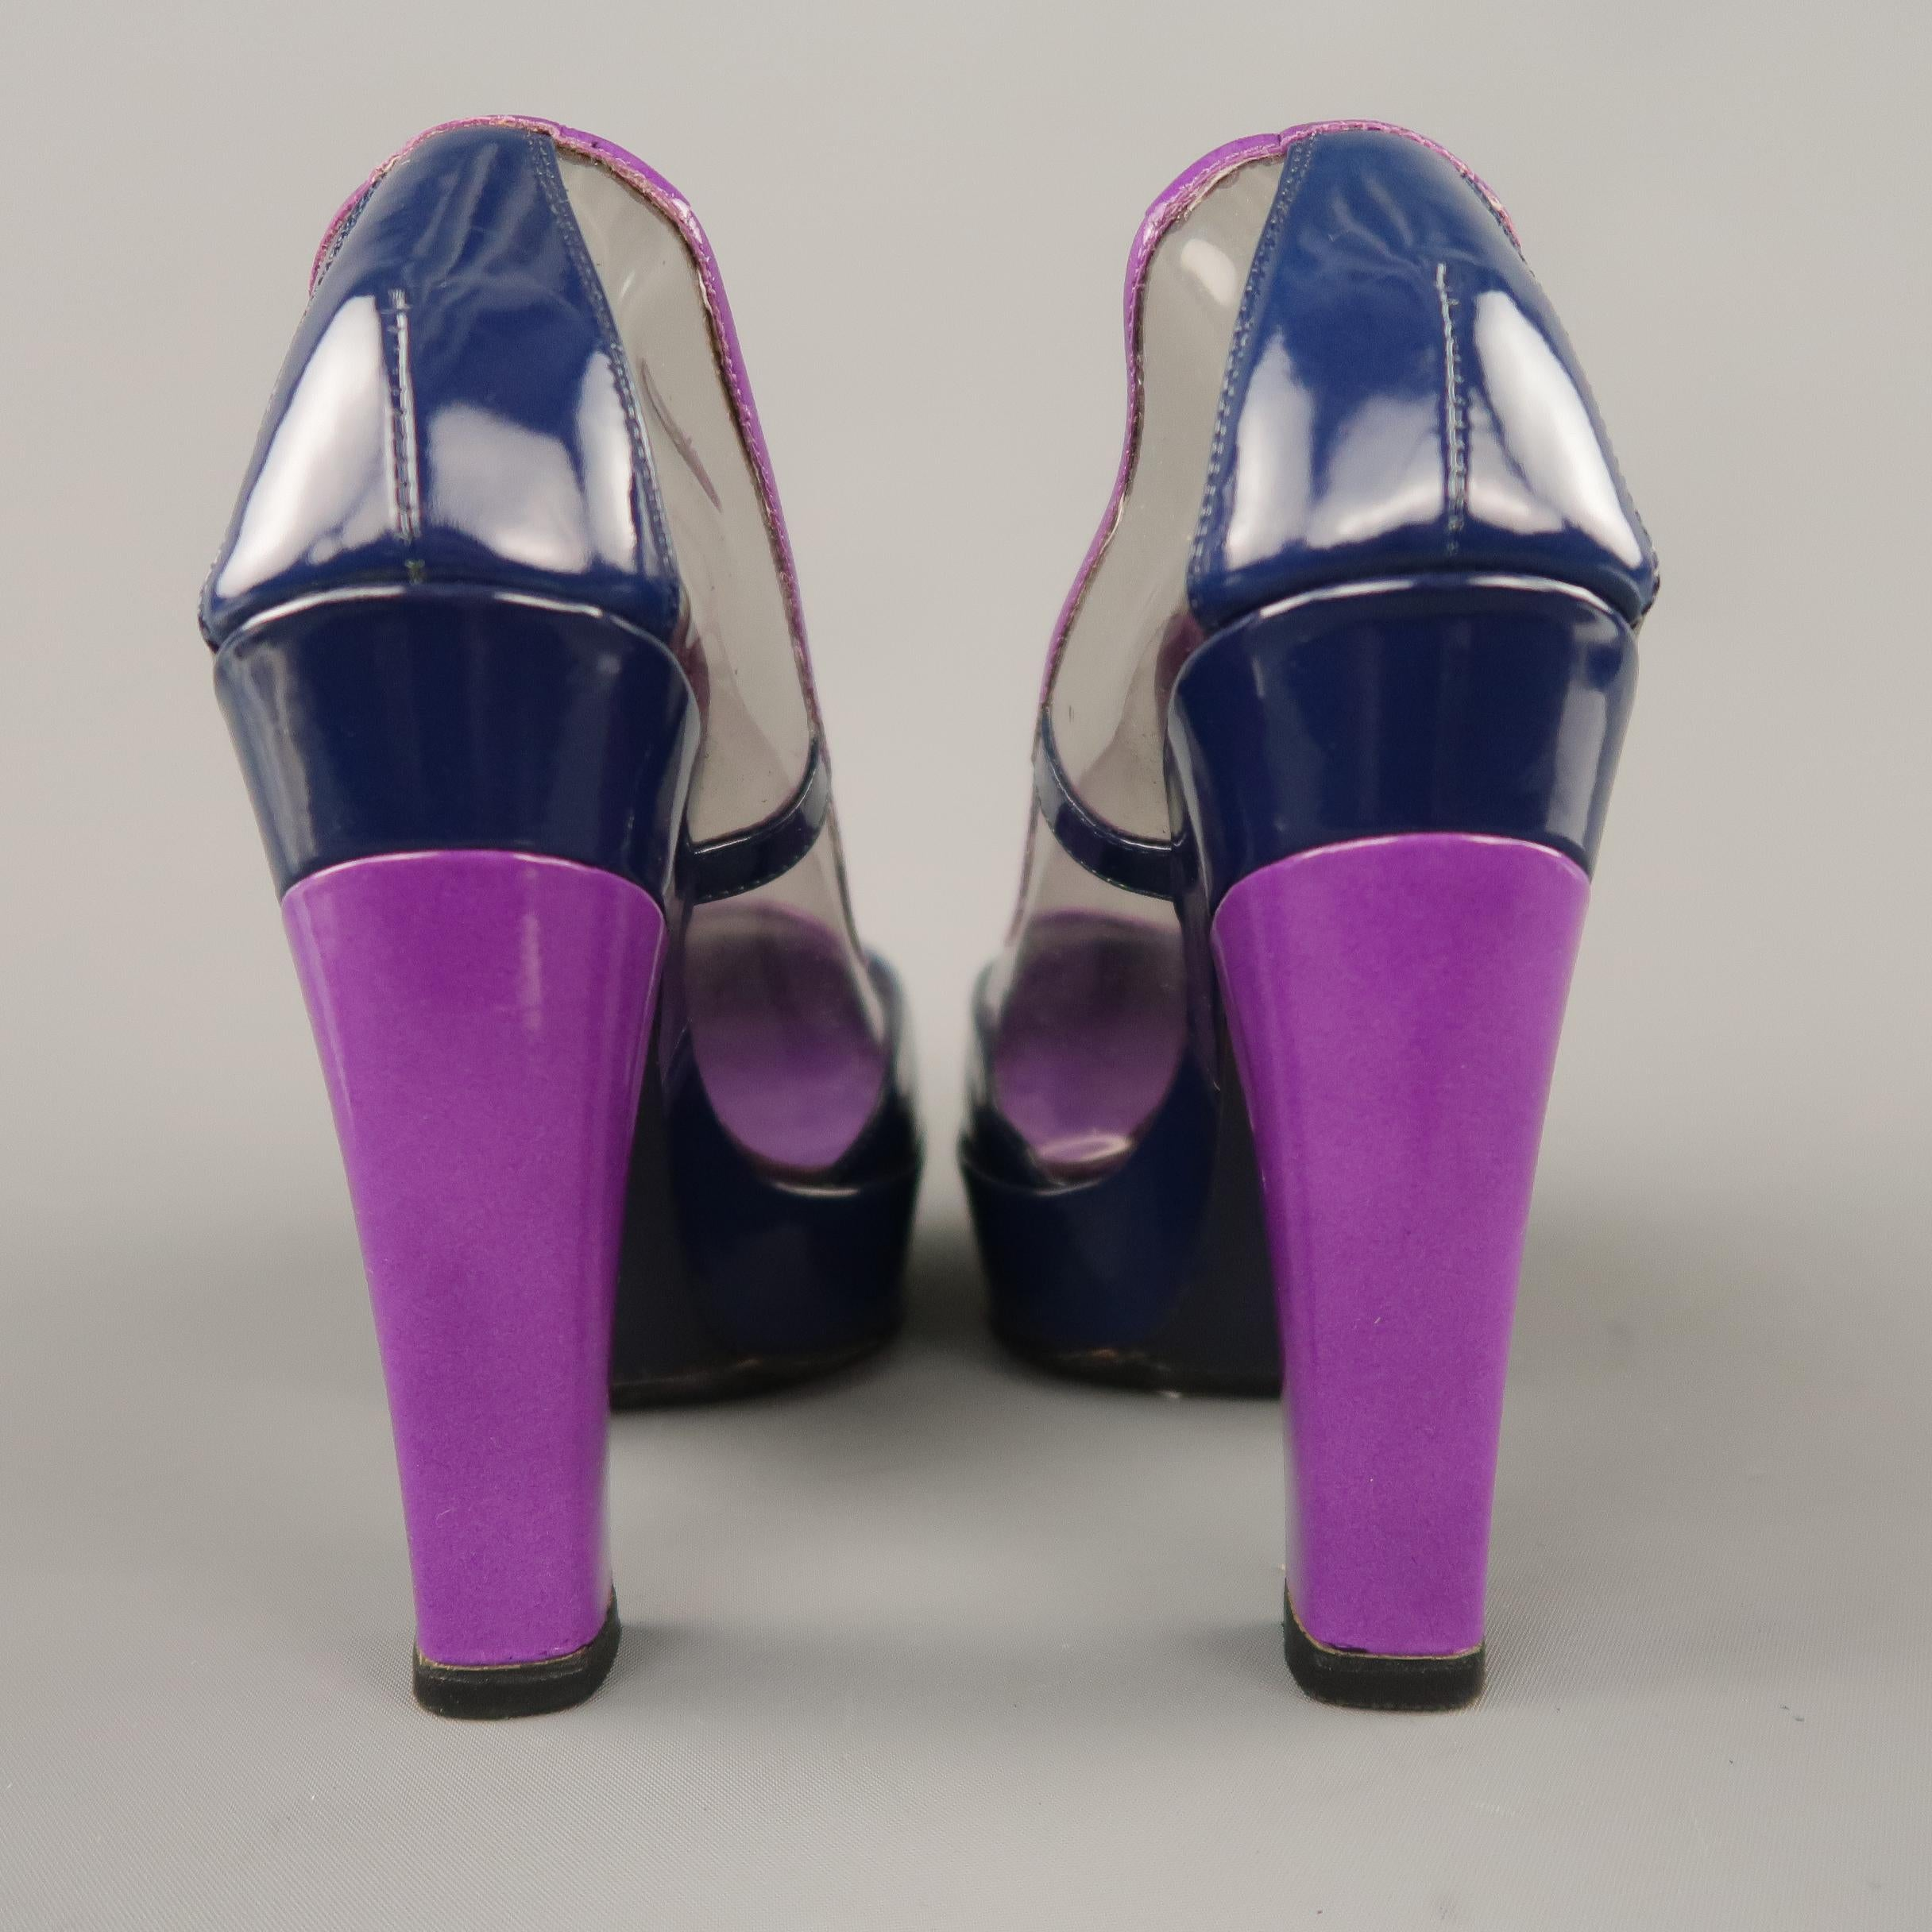 dbad0ad659 LOUIS VUITTON Size 6 Purple and Navy Clear Vinyl and Patent Leather  Platform Pumps For Sale at 1stdibs